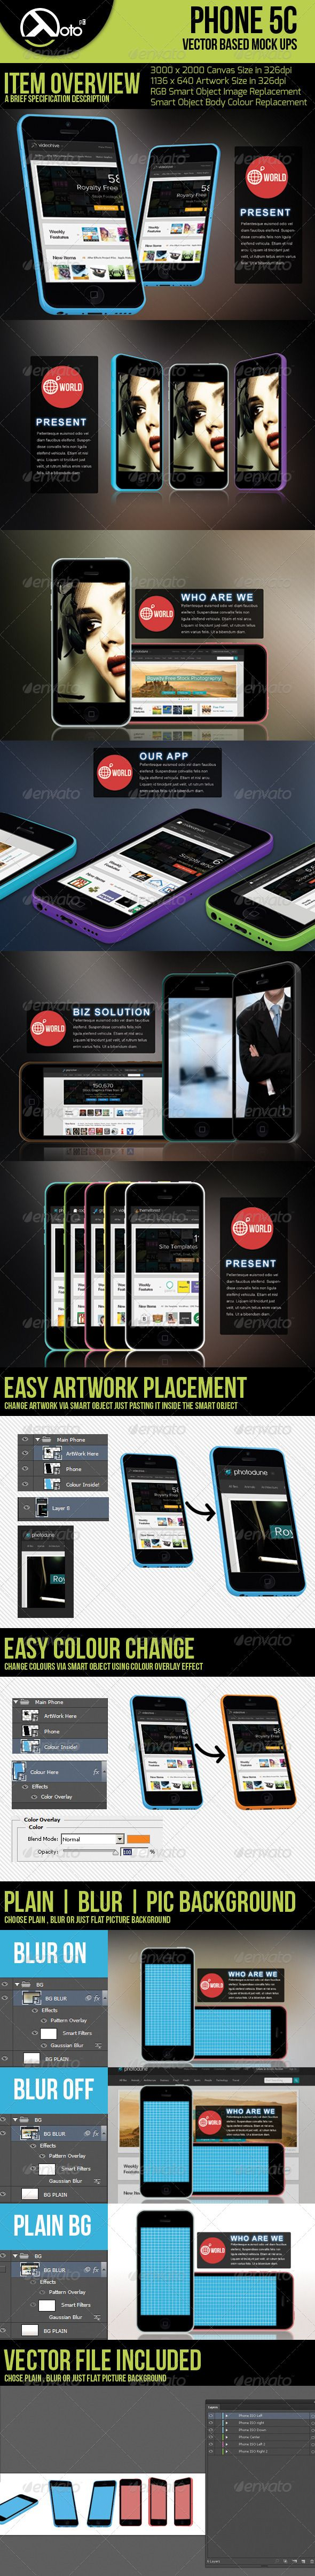 Phone 5c Vector Based Mockup — Photoshop PSD #website #iphone • Available here → https://graphicriver.net/item/phone-5c-vector-based-mockup/5667376?ref=pxcr